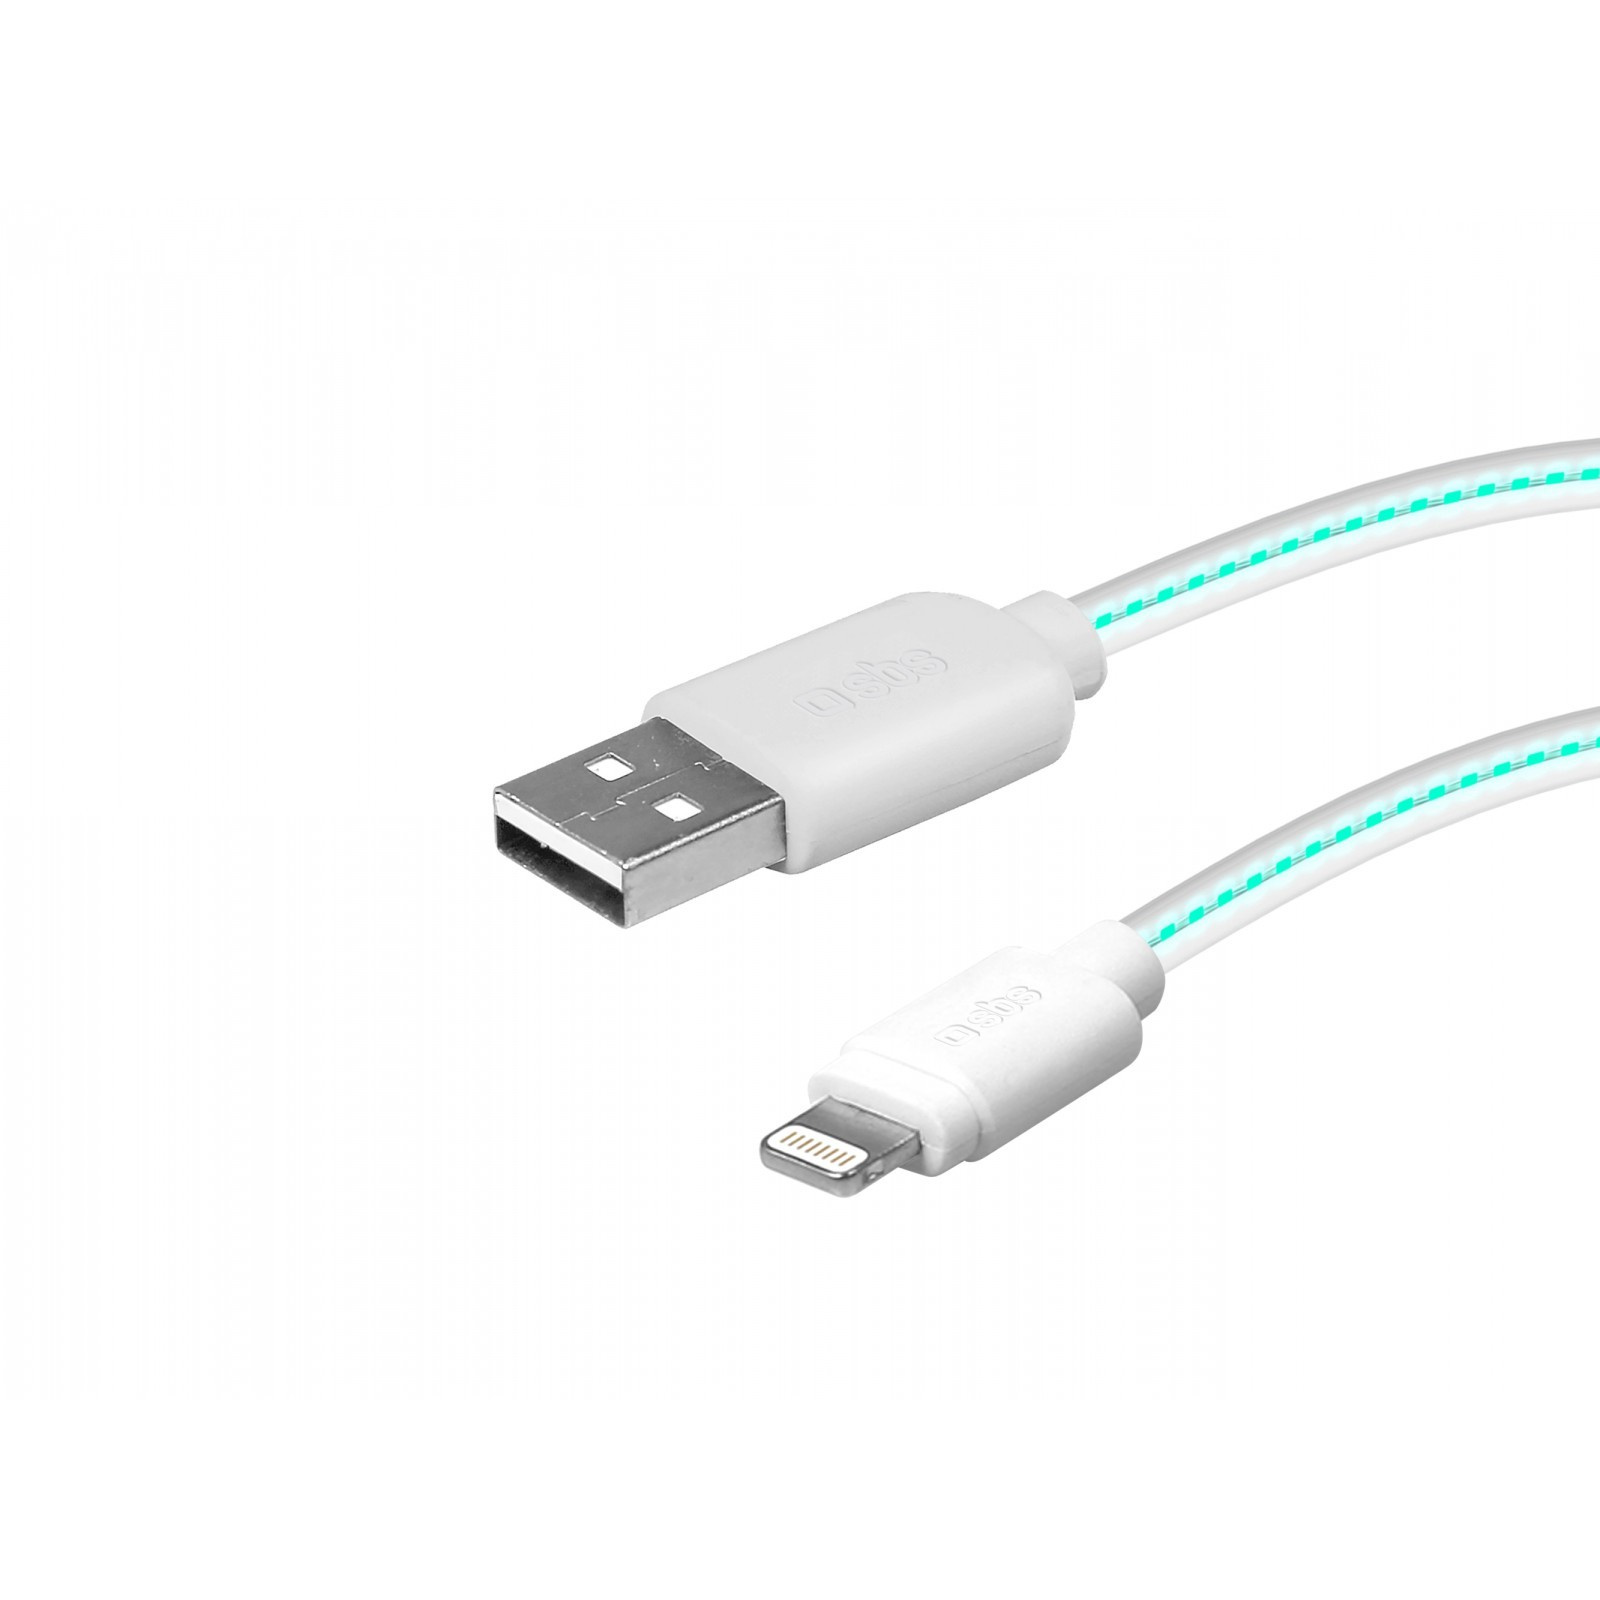 SBS Otg Cable for Tablet and Smartphone Samsung and more.